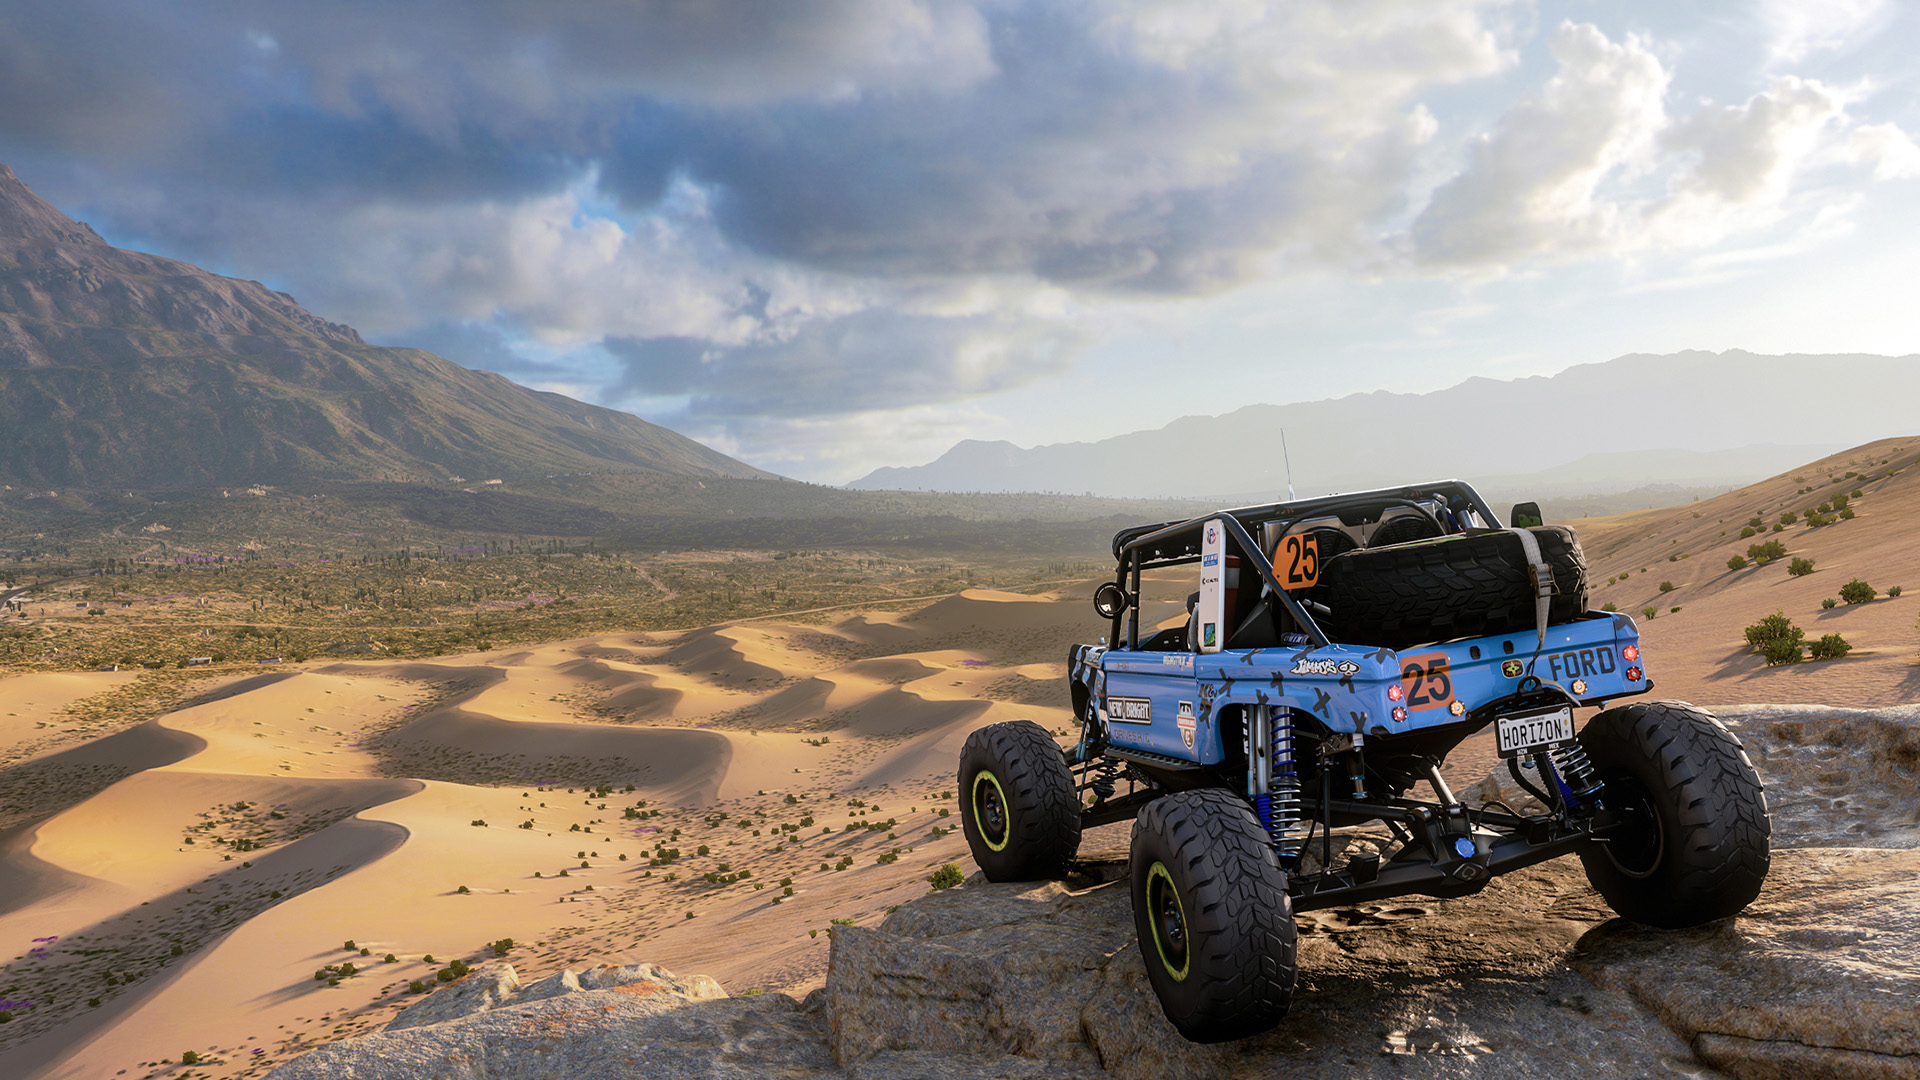 A car looks out on the desert in Forza Horizon 5